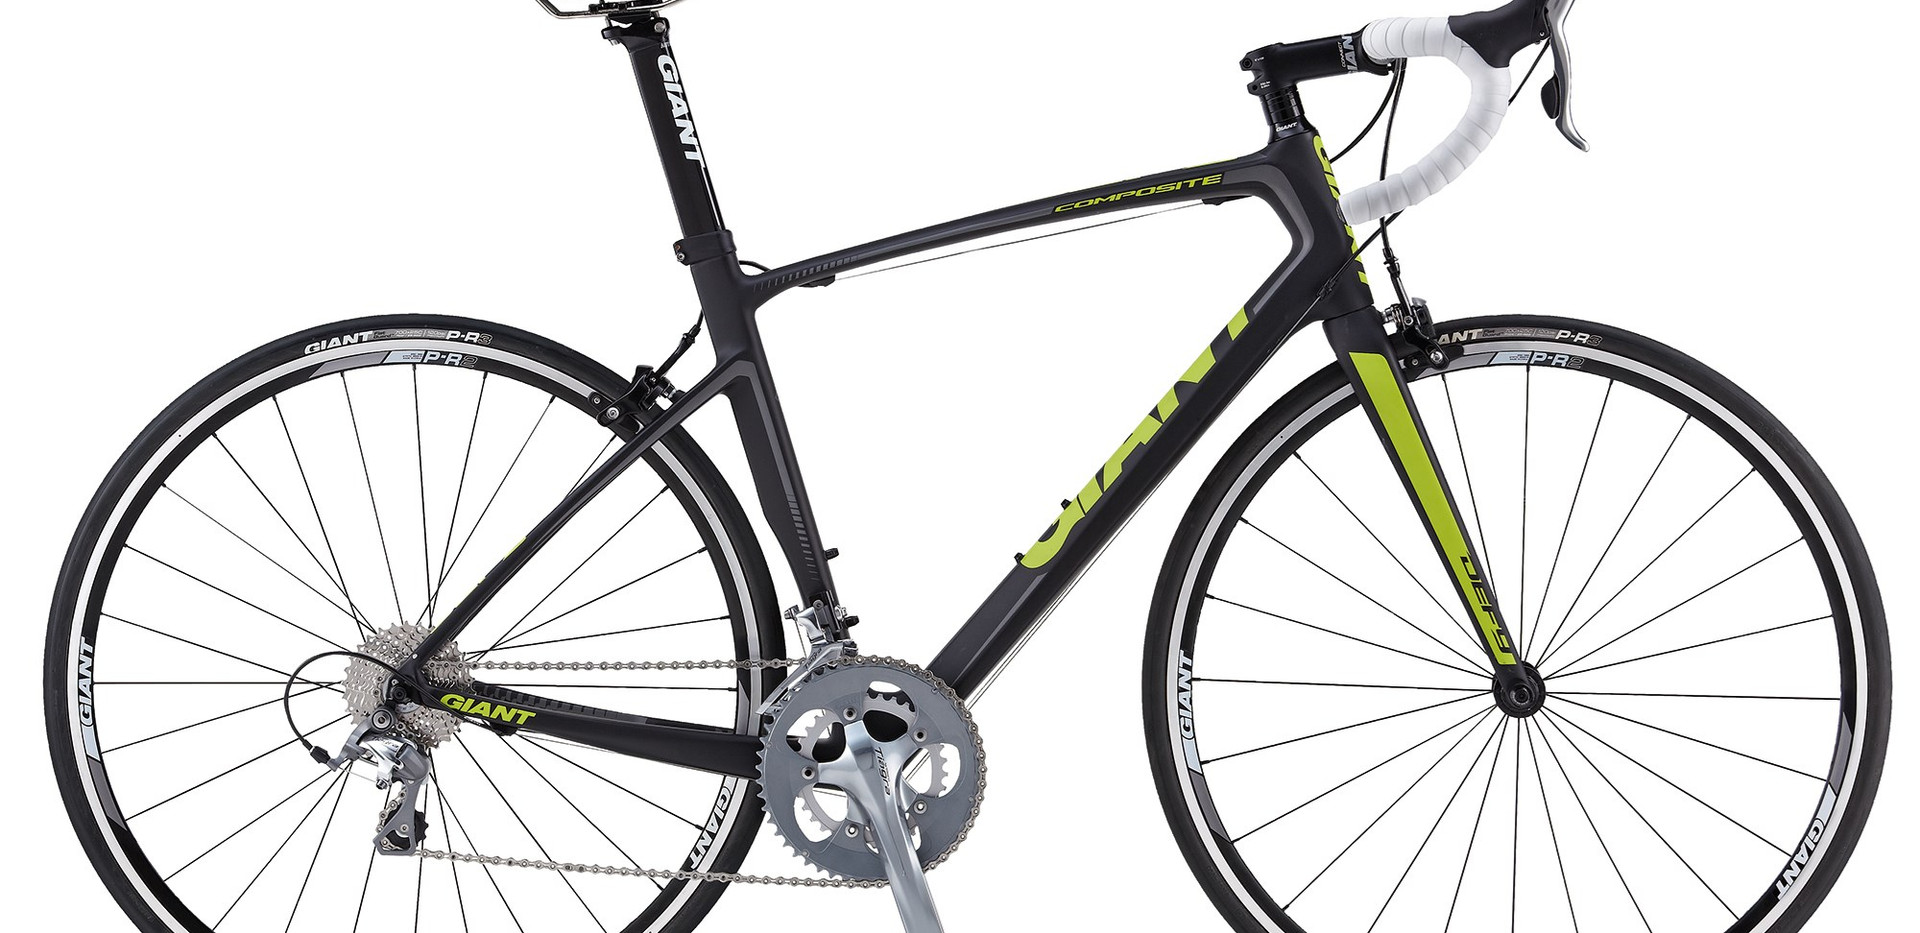 Giant Carbon Road Bike 56cm